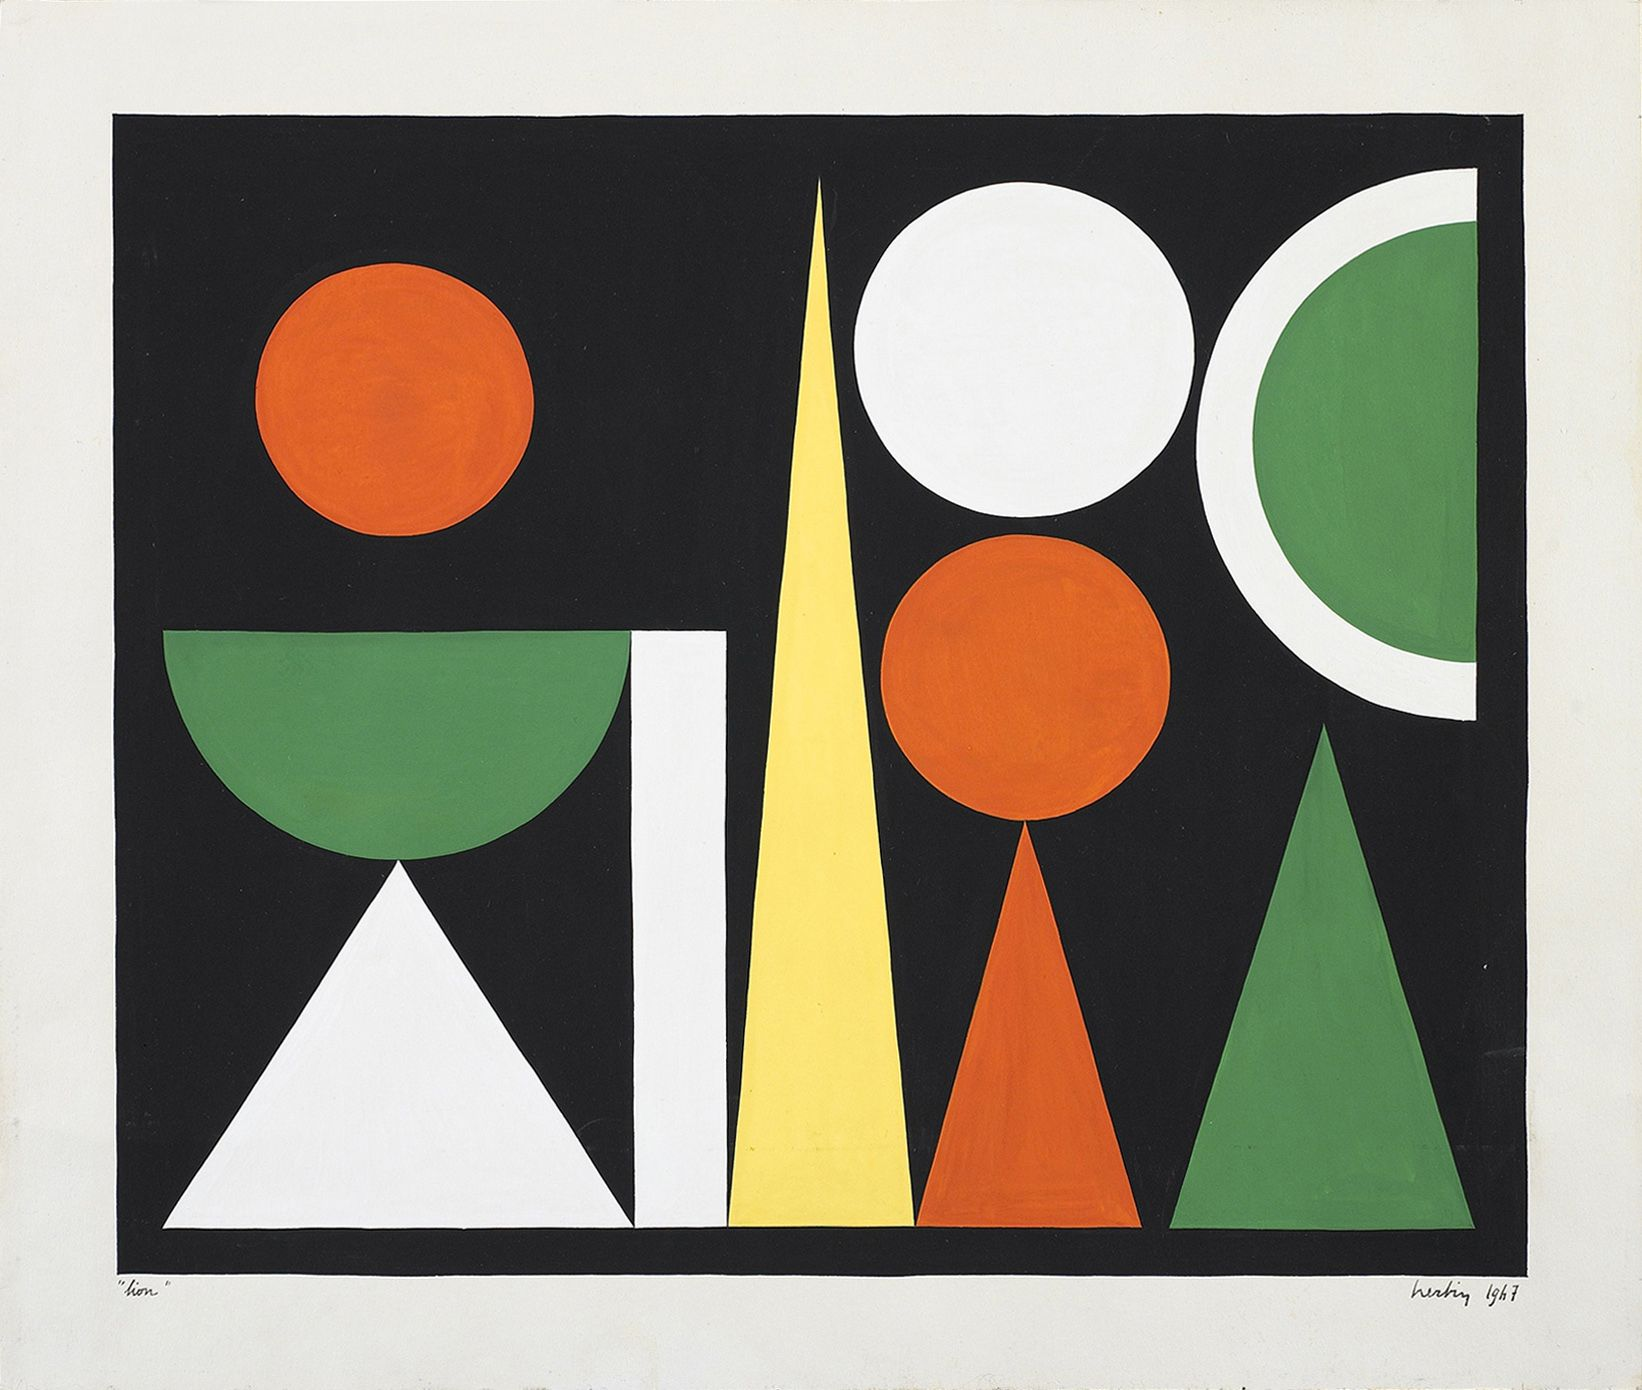 Auguste Herbin, Lion, 1947, Gouache on paper 9 3/4 x 11 3/4 inches